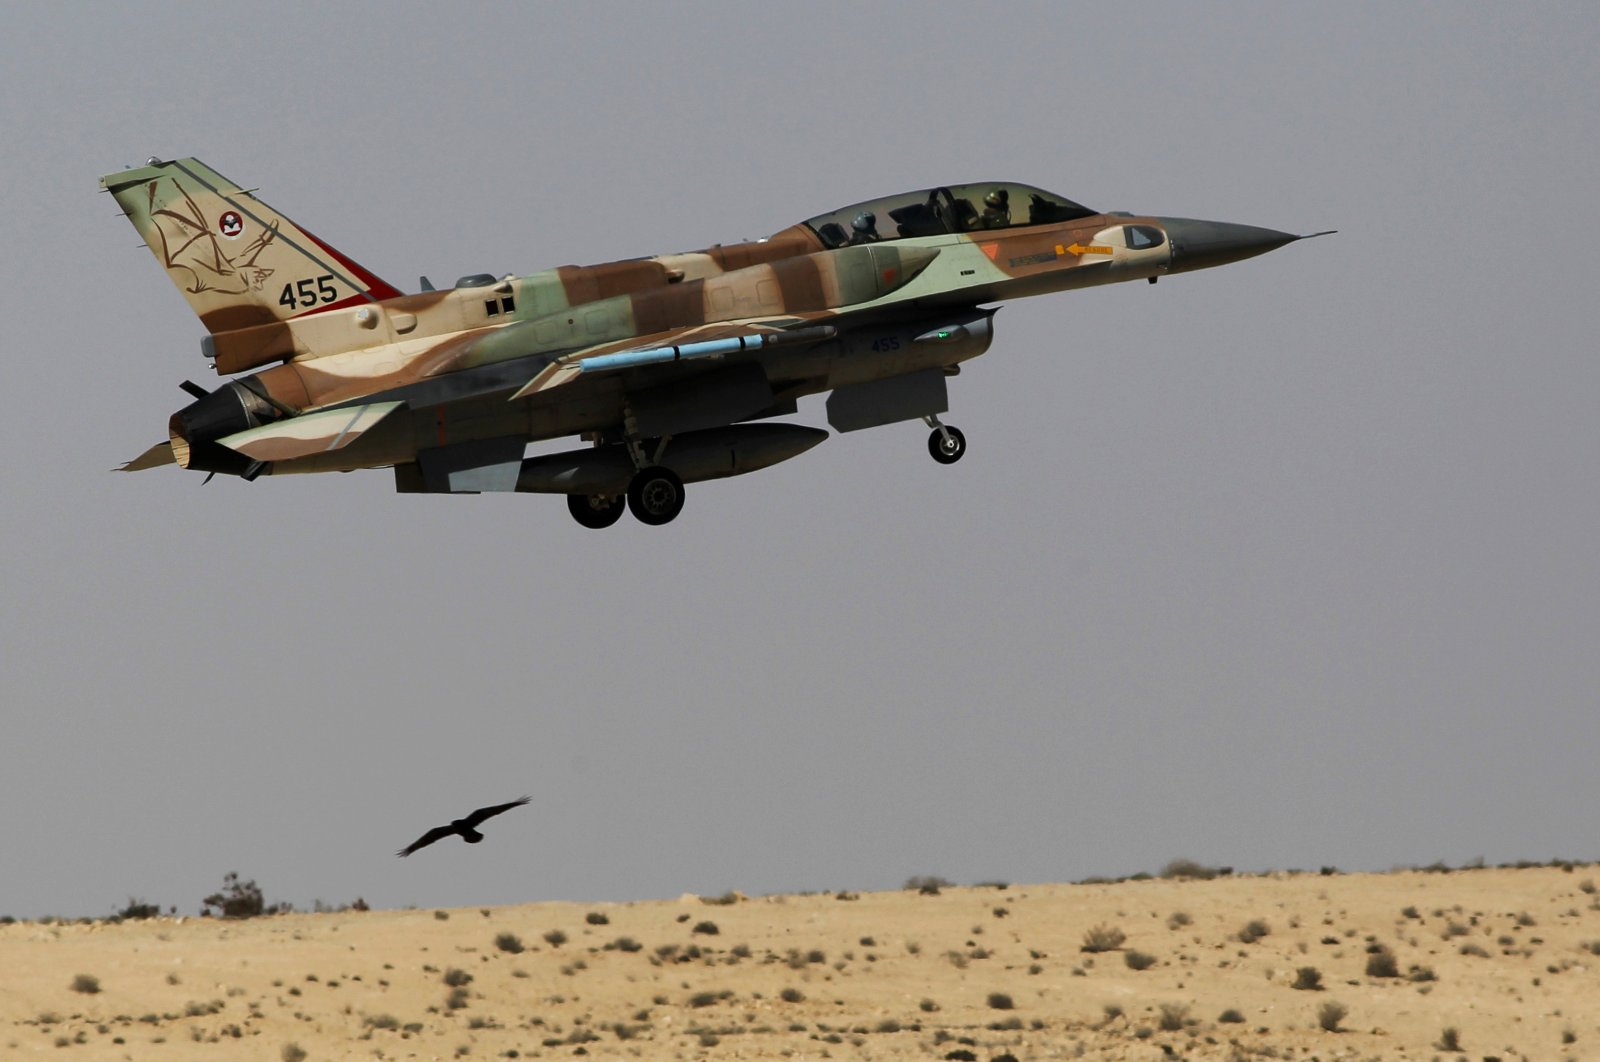 An Israeli F-16 fighter jet takes off from Ramon air base in southern Israel during routine training, Oct. 21, 2013. (Reuters Photo)